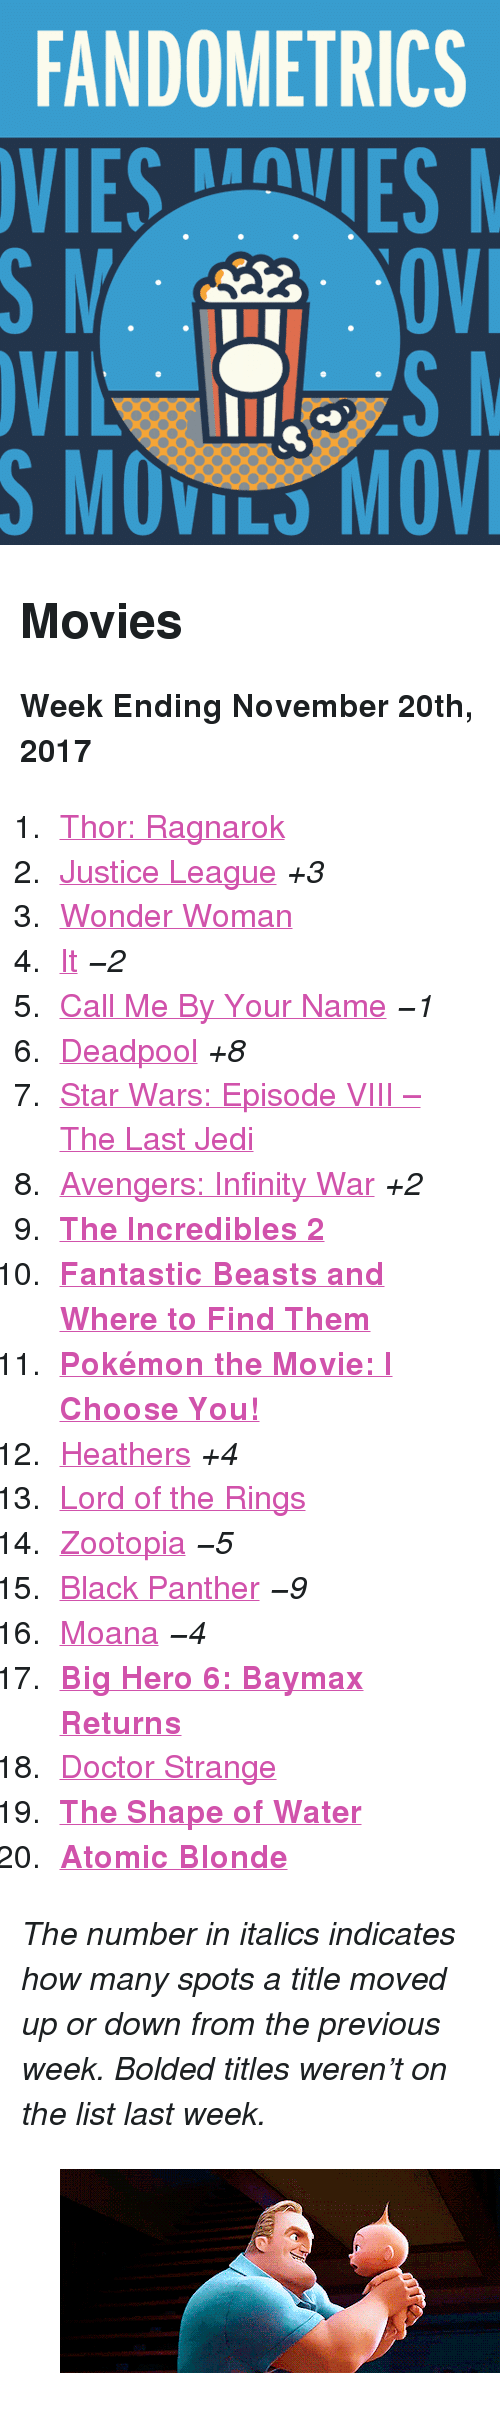 """Doctor, Gif, and Jedi: FANDOMETRICS  SMOVILS MOV <h2>Movies</h2><p><b>Week Ending November 20th, 2017</b></p><ol><li><a href=""""http://tumblr.co/6132D8l5m"""">Thor: Ragnarok</a></li><li><a href=""""http://tumblr.co/6133D8l5W"""">Justice League</a><i>+3</i></li><li><a href=""""http://tumblr.co/6134D8l5o"""">Wonder Woman</a></li><li><a href=""""http://tumblr.co/6135D8l5U"""">It</a><i><i>−2</i></i></li><li><a href=""""http://tumblr.co/6136D8l5q"""">Call Me By Your Name</a><i><i>−1</i></i></li><li><a href=""""http://tumblr.co/6137D8l5S"""">Deadpool</a><i>+8</i></li><li><a href=""""http://tumblr.co/6138D8l5s"""">Star Wars: Episode VIII – The Last Jedi</a></li><li><a href=""""http://tumblr.co/6139D8l5t"""">Avengers: Infinity War</a><i>+2</i></li><li><a href=""""http://tumblr.co/6130D8l5Q""""><b>The Incredibles 2</b></a></li><li><a href=""""http://tumblr.co/6132D8l5a""""><b>Fantastic Beasts and Where to Find Them</b></a></li><li><a href=""""http://tumblr.co/6134D8l5I""""><b>Pokémon the Movie: I Choose You!</b></a></li><li><a href=""""http://tumblr.co/6136D8l50"""">Heathers</a><i>+4</i></li><li><a href=""""http://tumblr.co/6137D8l5F"""">Lord of the Rings</a></li><li><a href=""""http://tumblr.co/6131D8l5f"""">Zootopia</a><i><i>−5</i></i></li><li><a href=""""http://tumblr.co/6137D8lgB"""">Black Panther</a><i><i>−9</i></i></li><li><a href=""""http://tumblr.co/6131D8lg1"""">Moana</a><i><i>−4</i></i></li><li><a href=""""http://tumblr.co/6135D8lgJ""""><b>Big Hero 6: Baymax Returns</b></a></li><li><a href=""""http://tumblr.co/6137D8lgz"""">Doctor Strange</a></li><li><a href=""""http://tumblr.co/6138D8lgM""""><b>The Shape of Water</b></a></li><li><a href=""""http://tumblr.co/6139D8lg3""""><b>Atomic Blonde</b></a></li></ol><p><i>The number in italics indicates how many spots a title moved up or down from the previous week. Bolded titles weren't on the list last week.</i></p><figure class=""""tmblr-full pinned-target"""" data-orig-height=""""209"""" data-orig-width=""""500"""" data-tumblr-attribution=""""ginahlinetti:cFYP9vkwCdQhsSI6LYsYMw:ZlYc3n2S7XSH8""""><img src=""""https://78.media.tumblr.com/1e29b134c2a27bed3dcc6d5543998"""